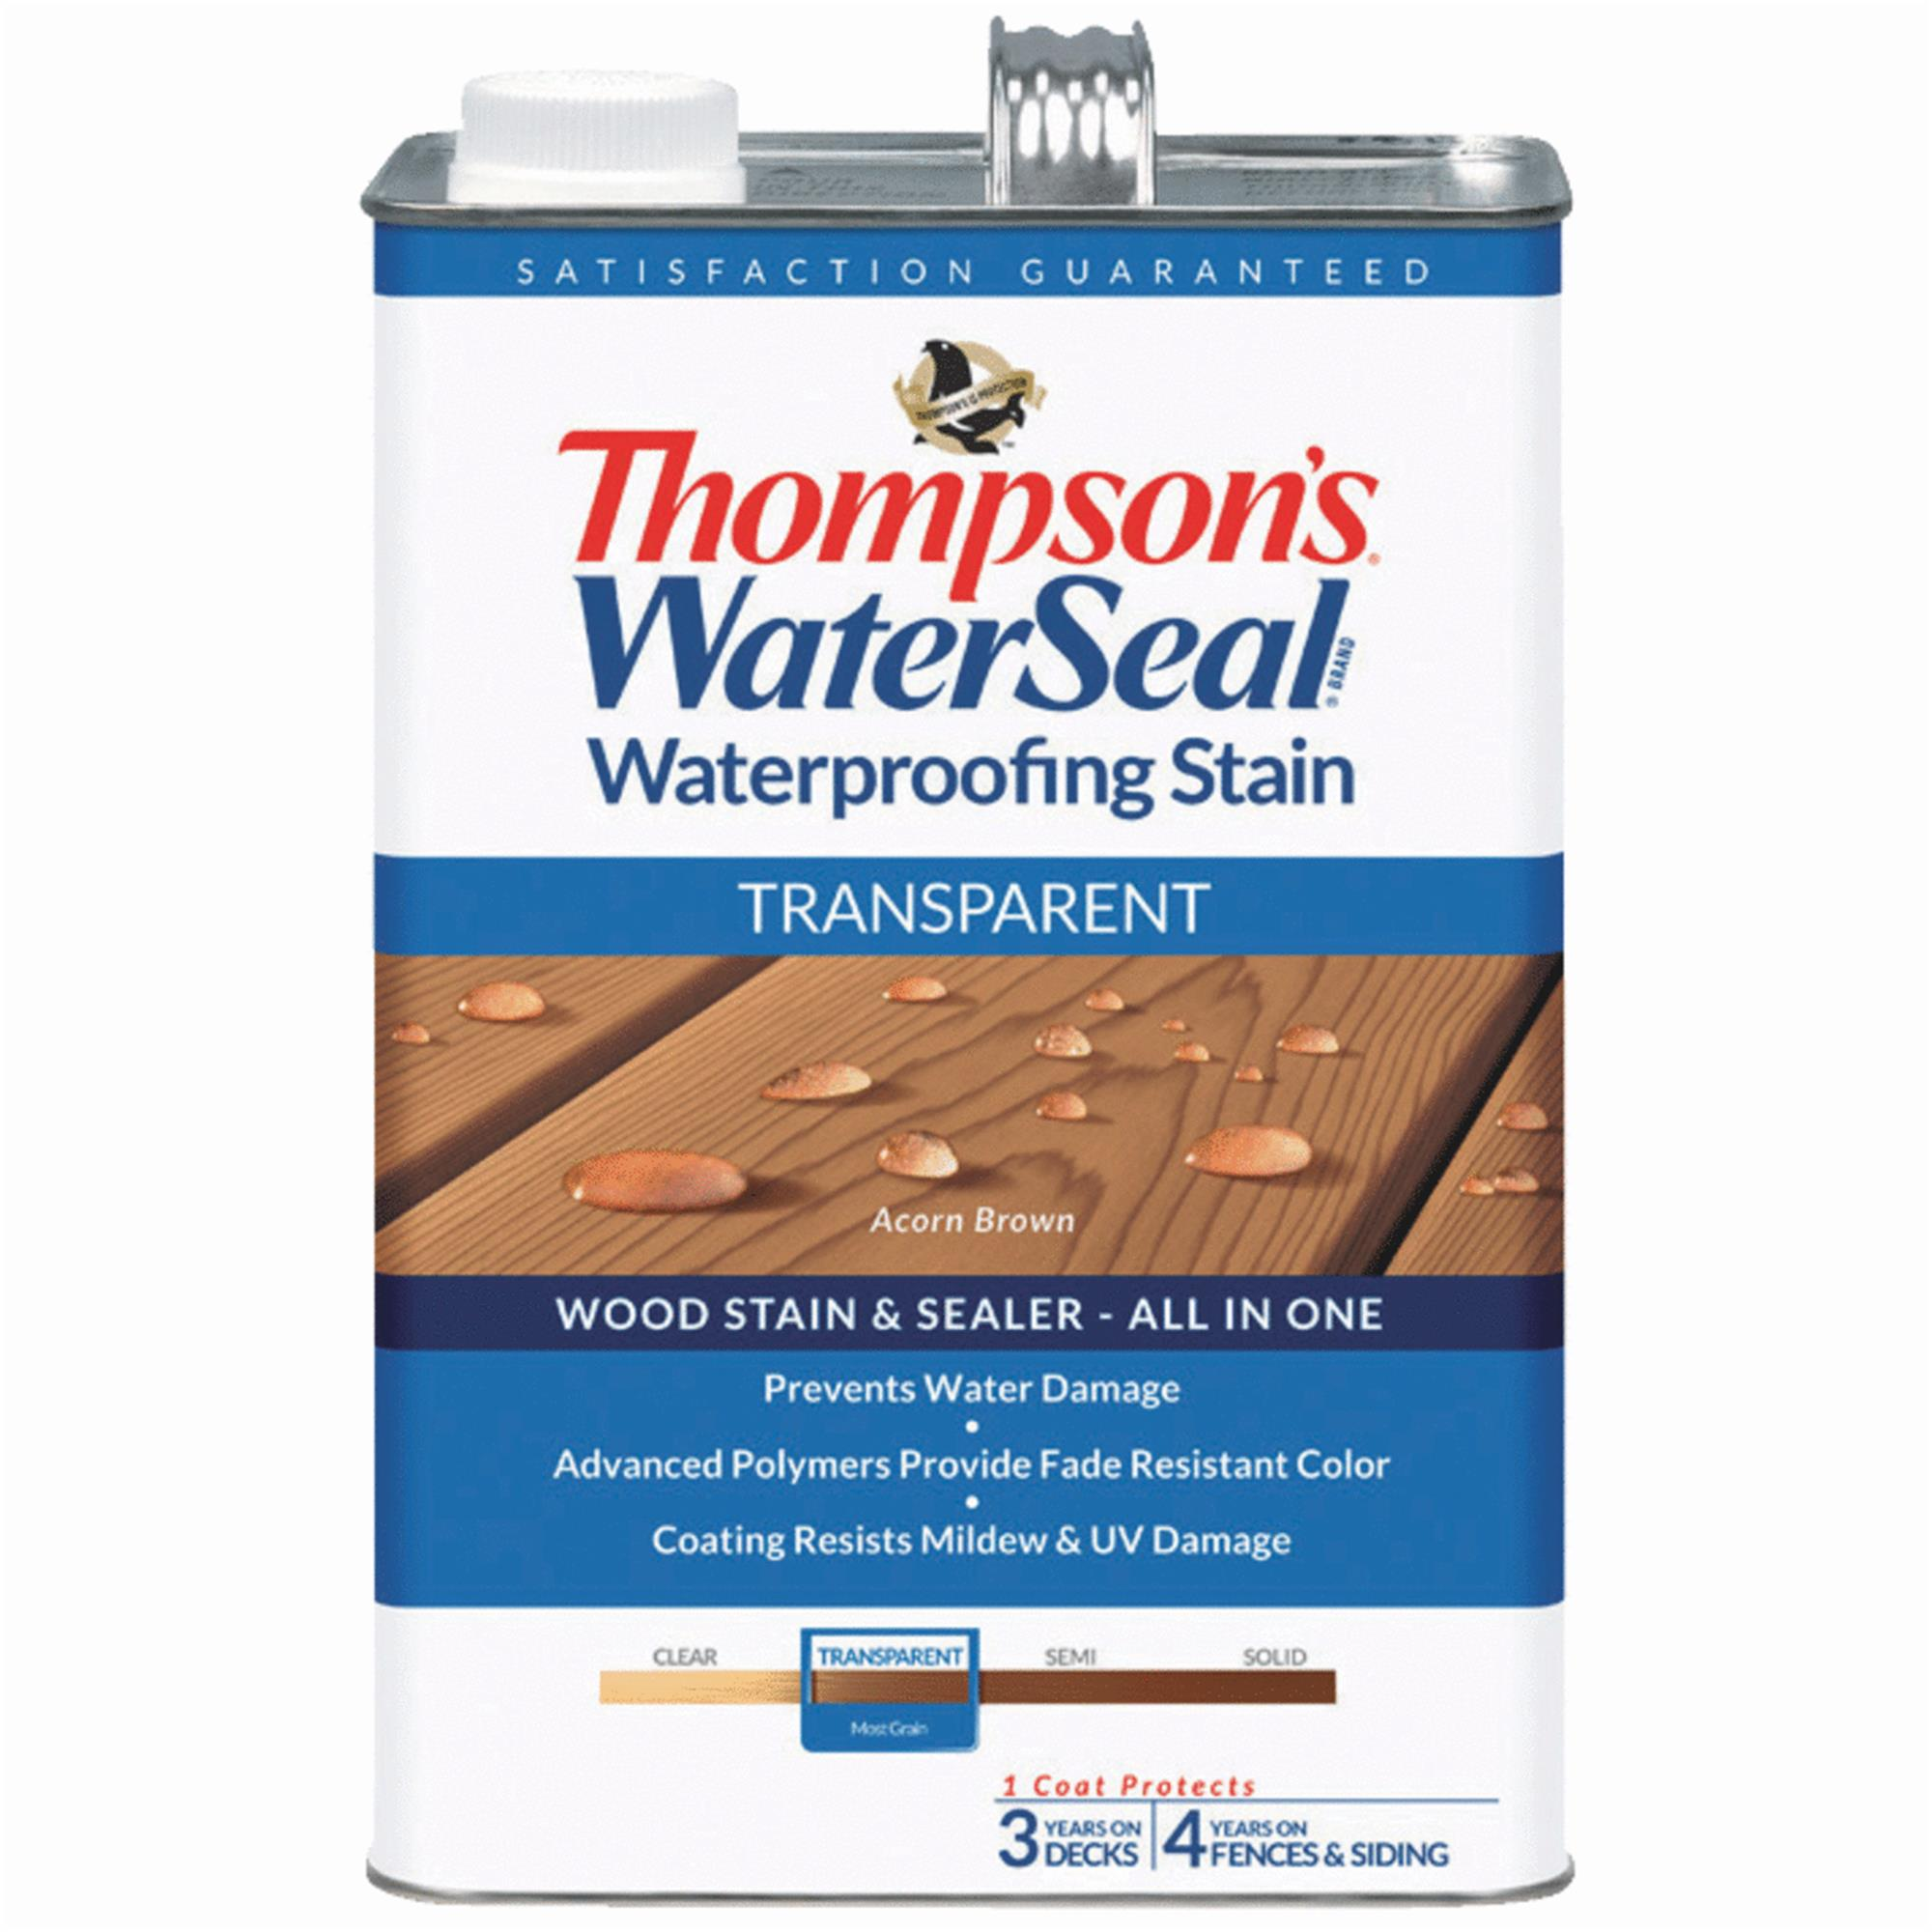 Thompsons WaterSeal Transparent Waterproofing Stain